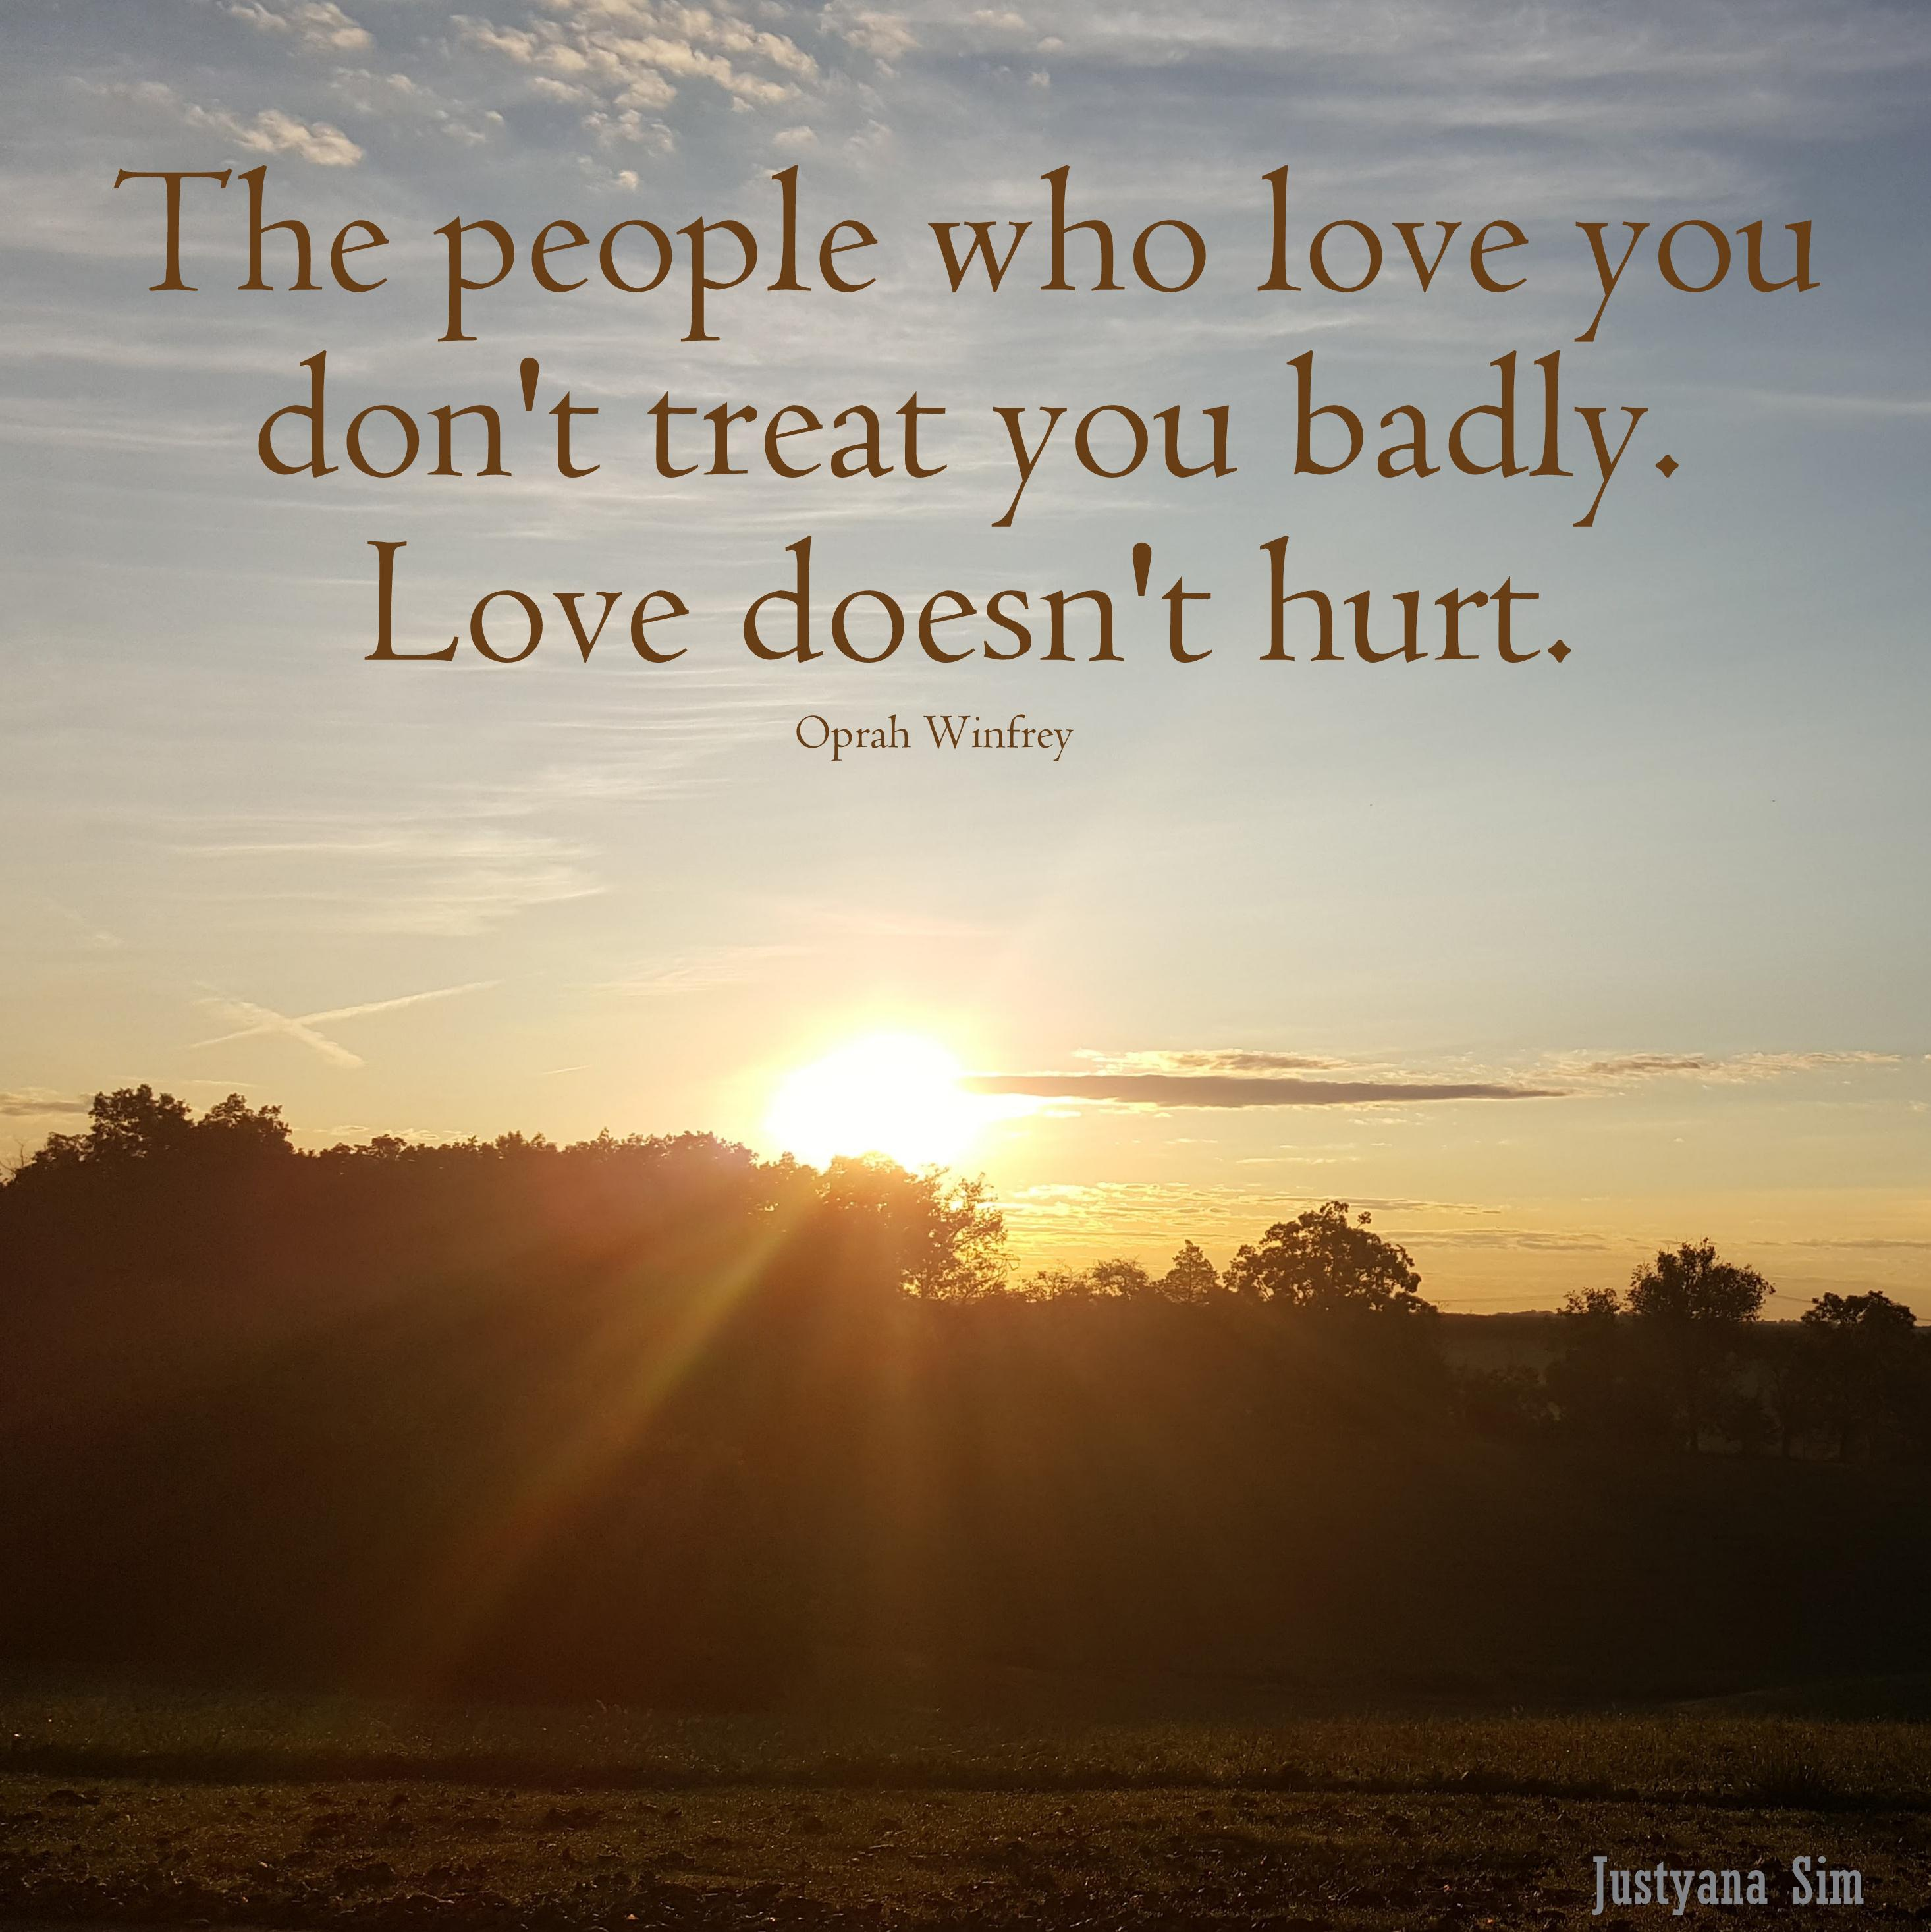 """The people who love you don't treat you badly. Love doesn't hurt."" -Oprah Winfrey (2932×2933)"